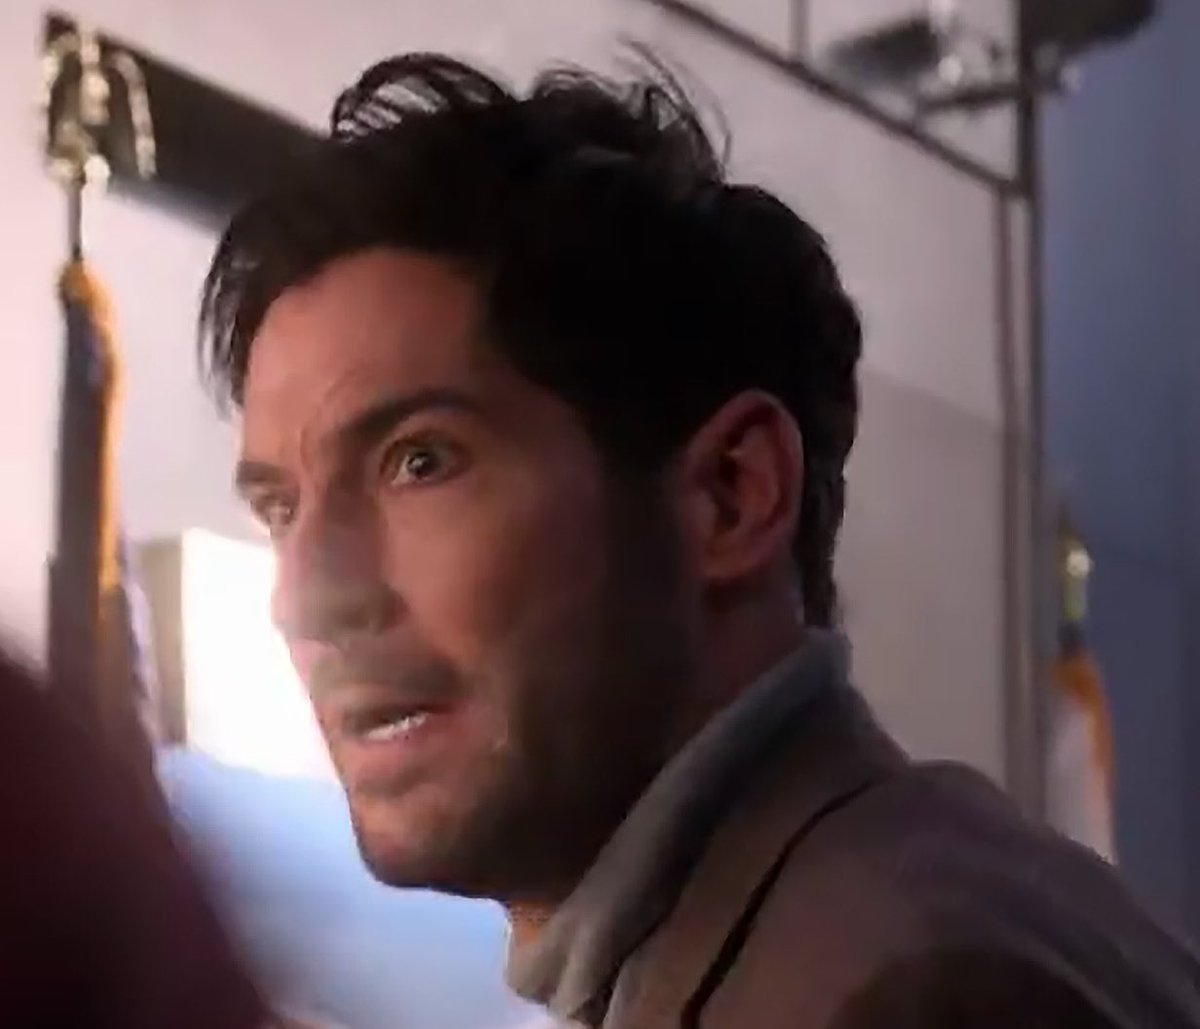 Kaykat Lucifer Spoilers On Twitter Still Watching Still Finding Details Like For Example Michael S Facial Scar Nice Call Back To The Comics There Luciferspoilers Luciferseason5 Https T Co Wwl6bdk5uc